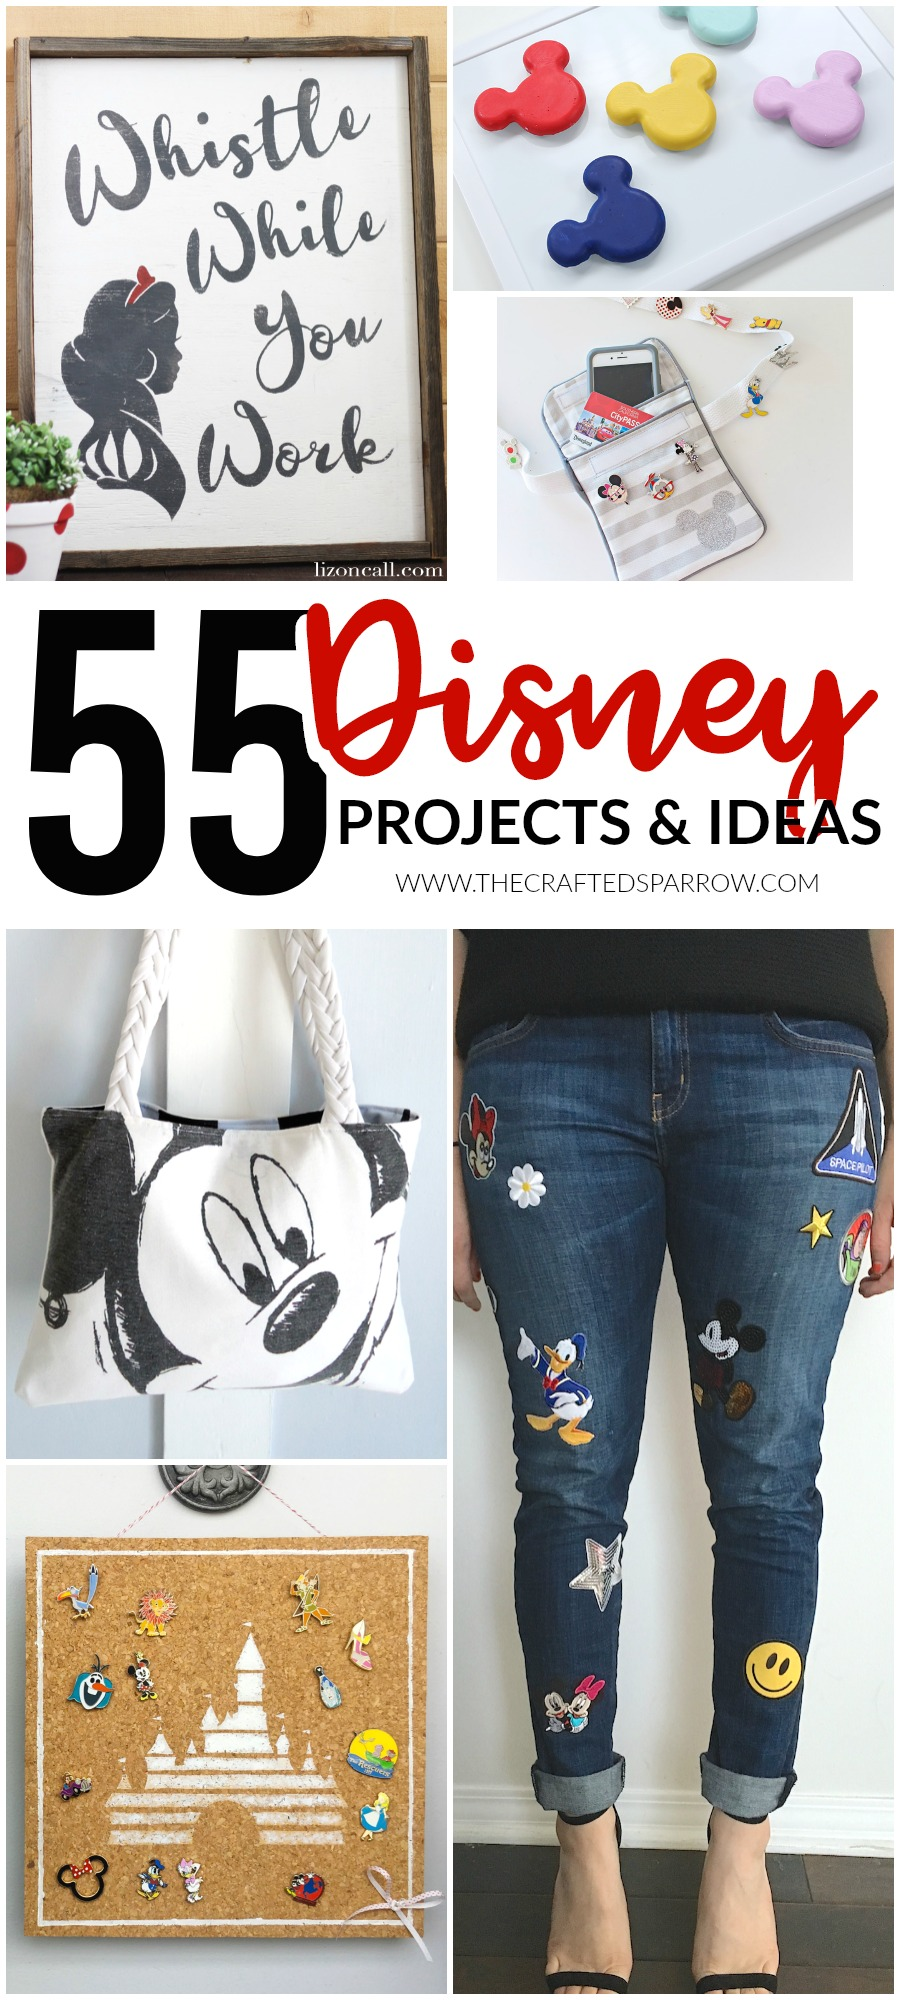 55 Disney Projects & Ideas